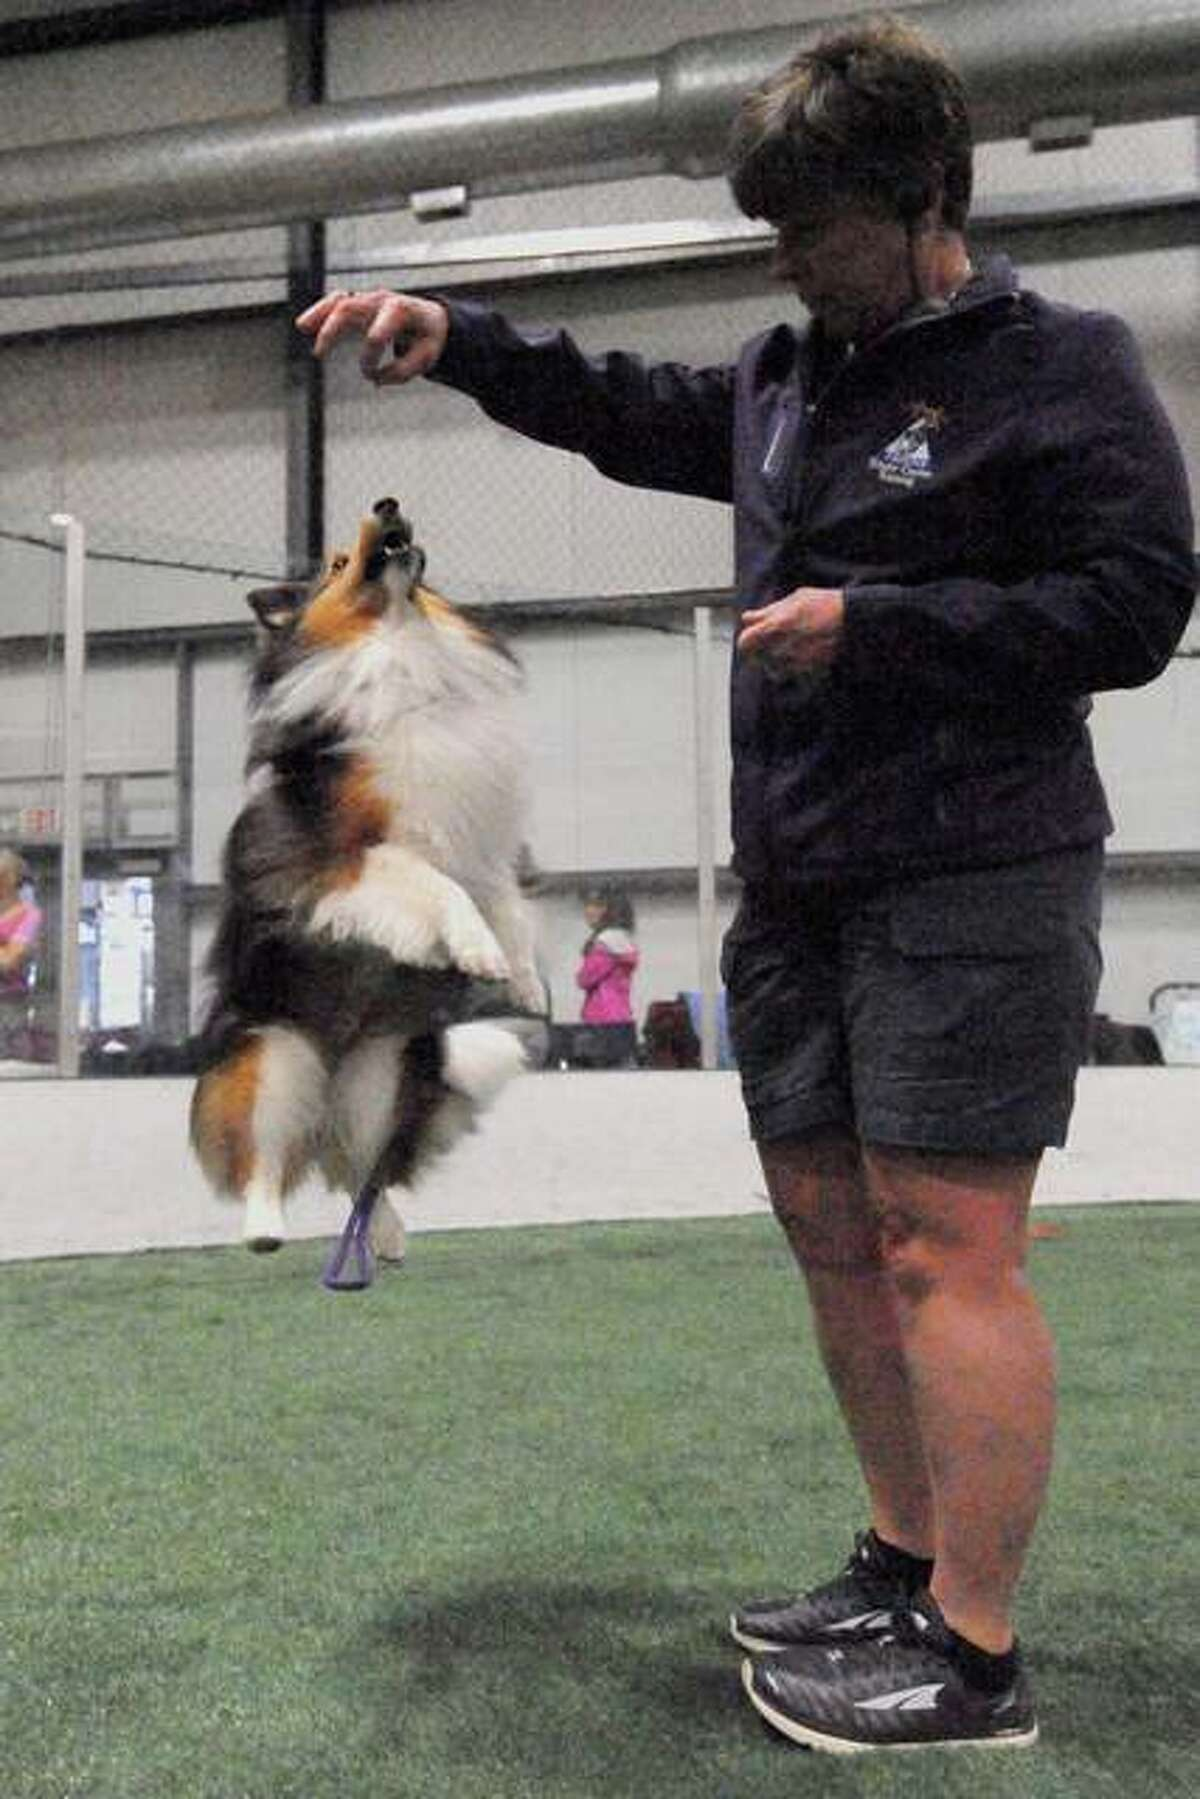 Joan Meyer of Caseyville, puts her dog Ray, 7, a Shetland Sheepdog, through a warm-up routine.